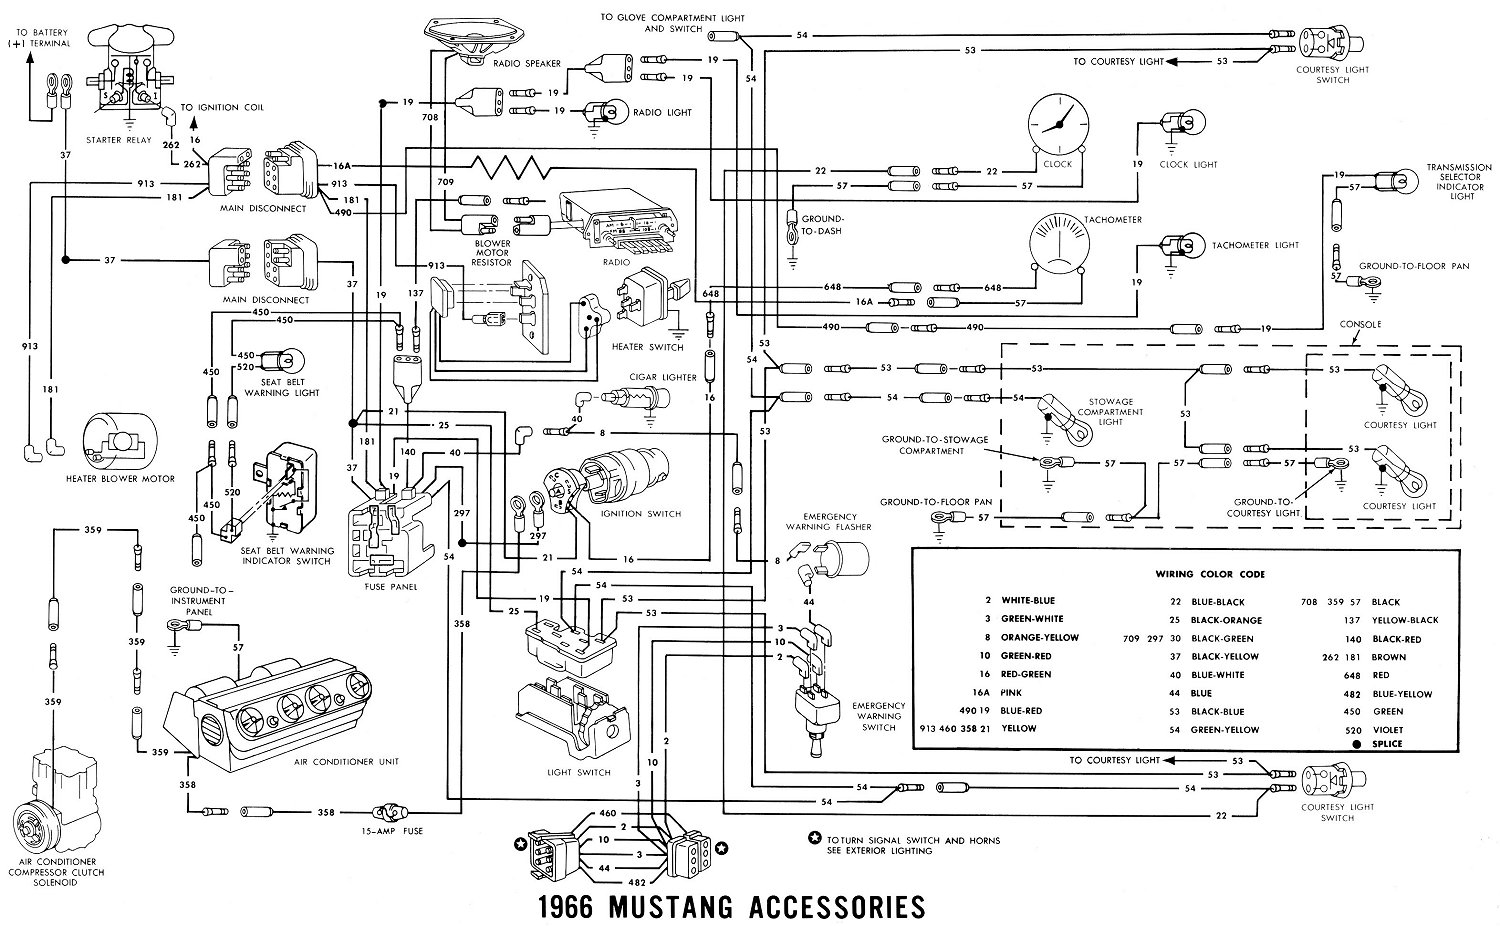 2015 Mustang Radio Wiring Diagram, 2015, Free Engine Image